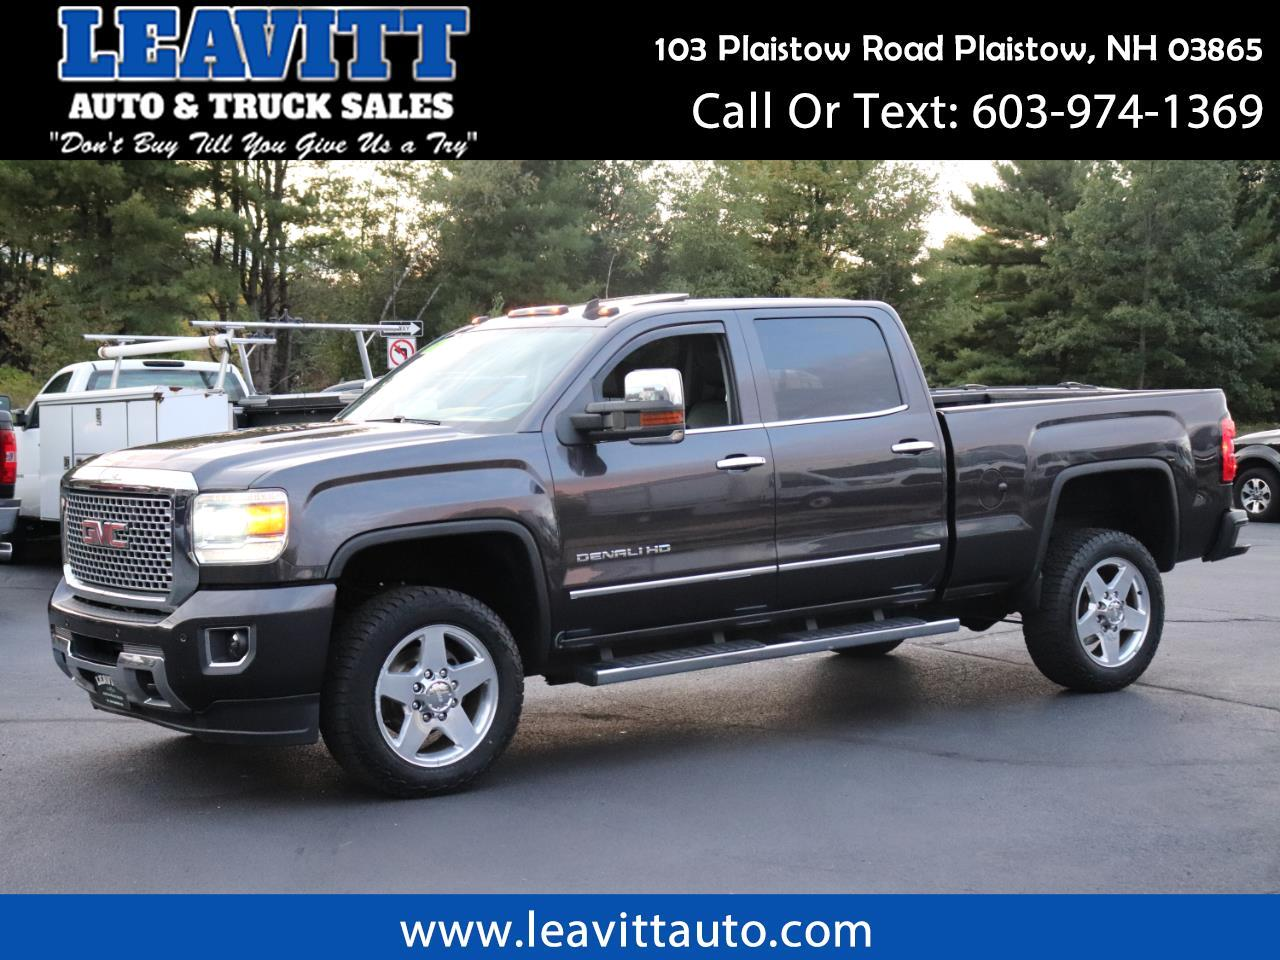 2015 GMC Sierra 2500HD DENALI CREW CAB LOADED!!